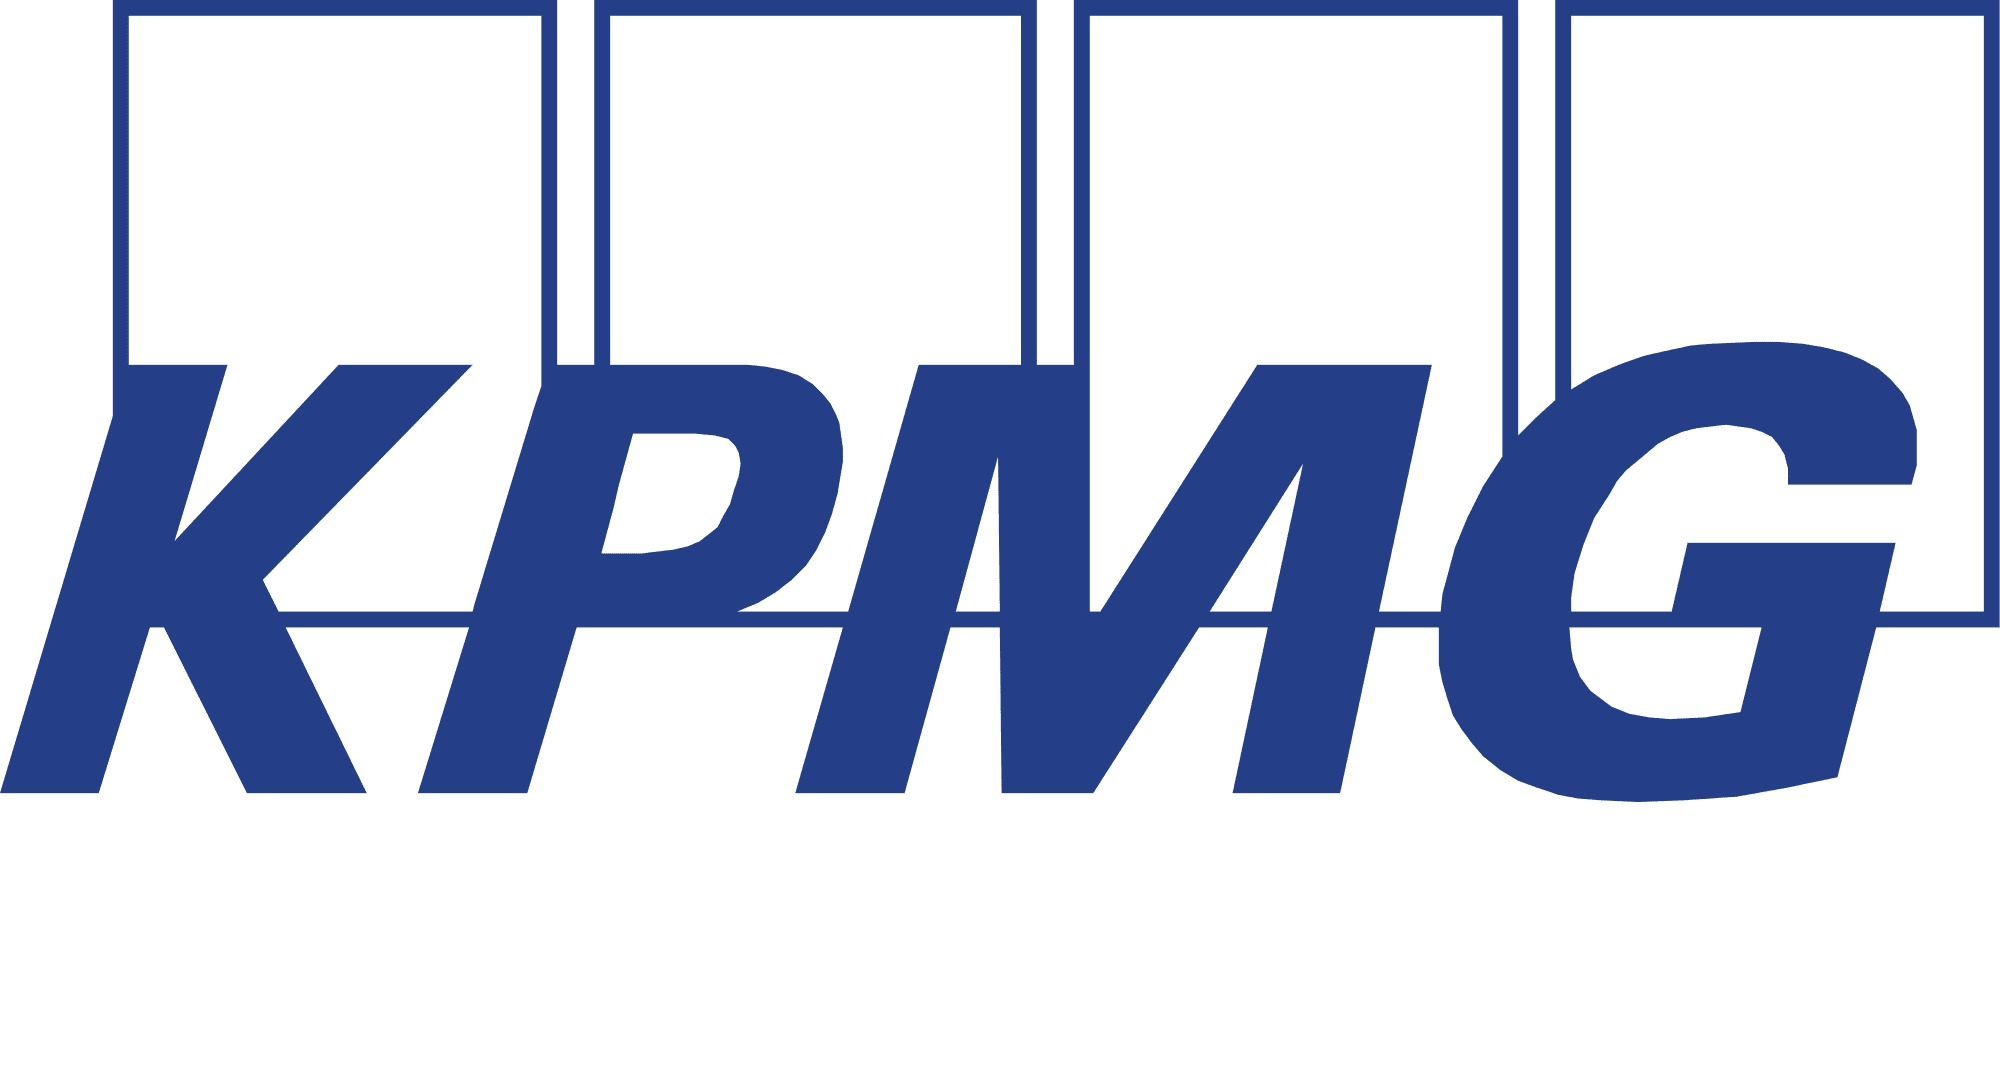 the KPMG logo.